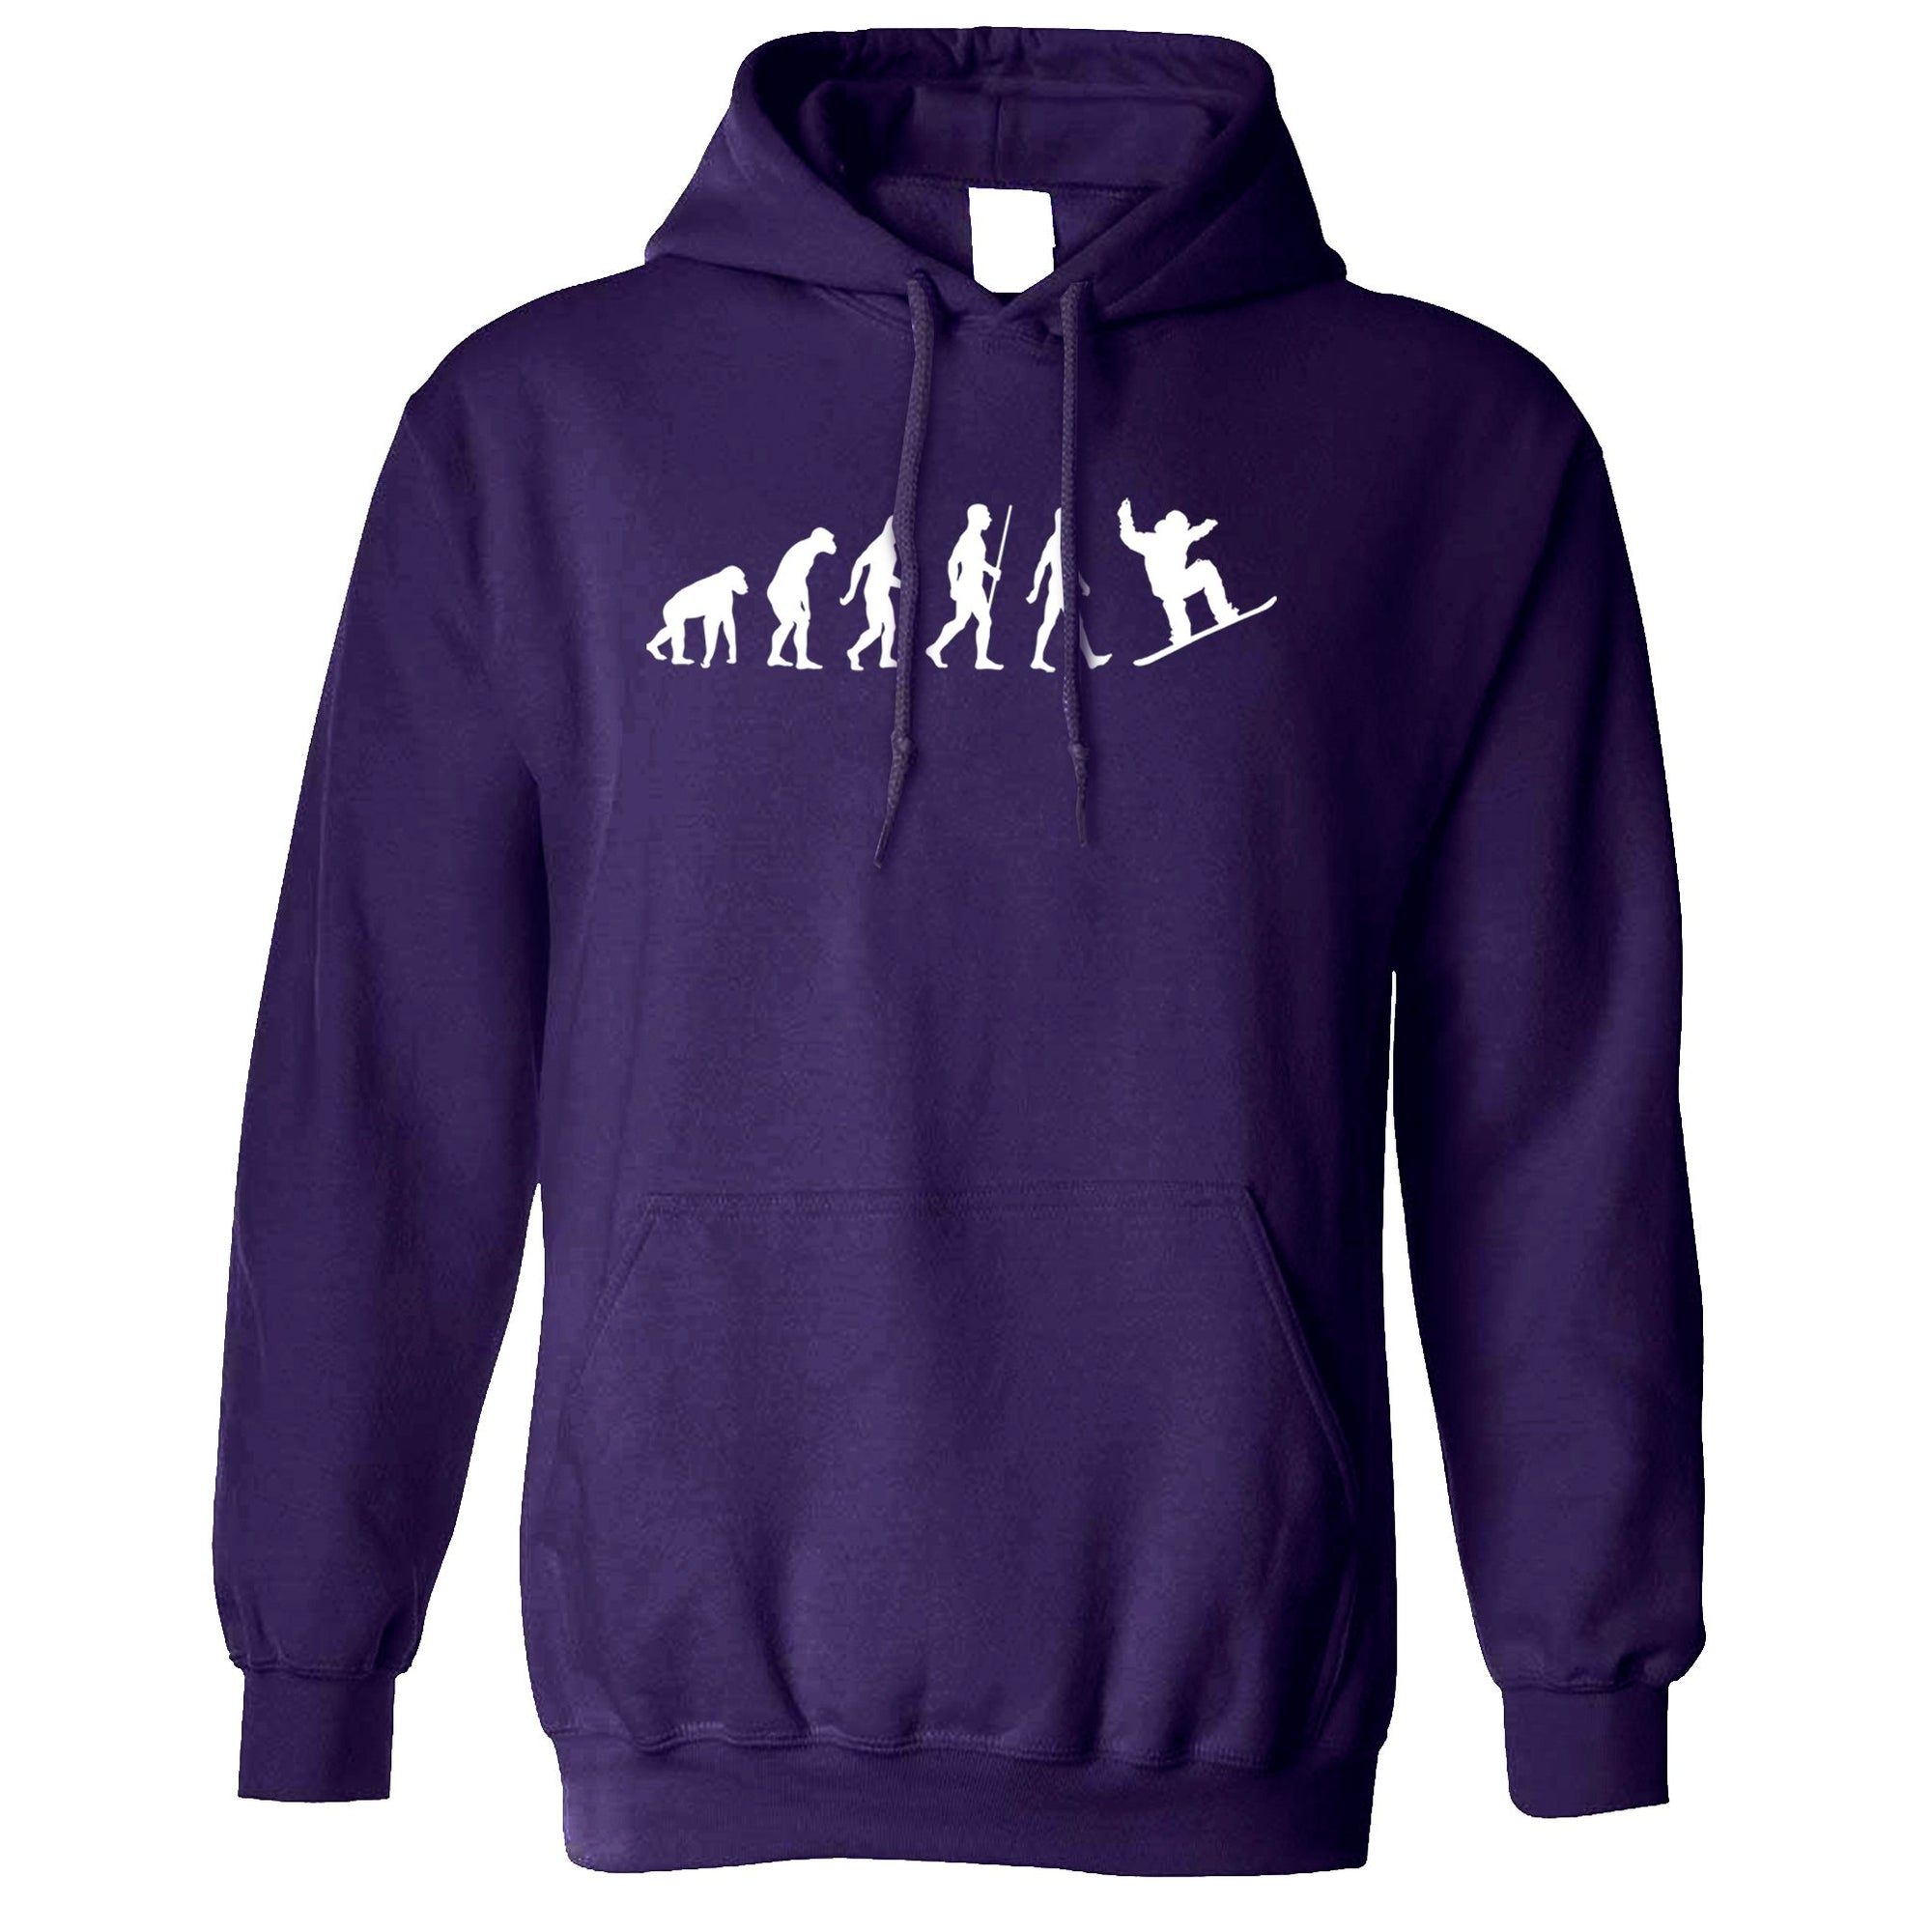 Sports Hoodie The Evolution Of A Snowboarder Hooded Jumper